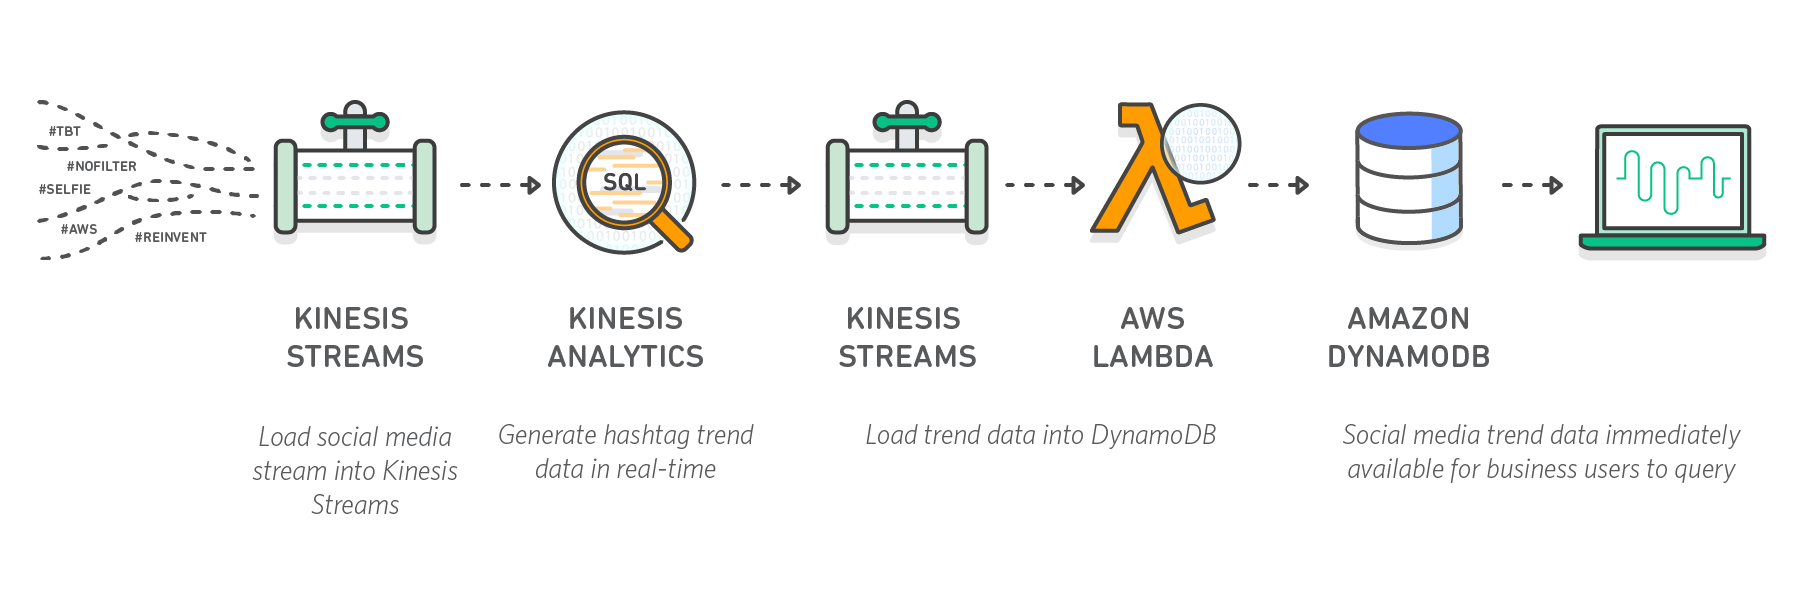 diagram-kinesis-architecture-social-media-analytics